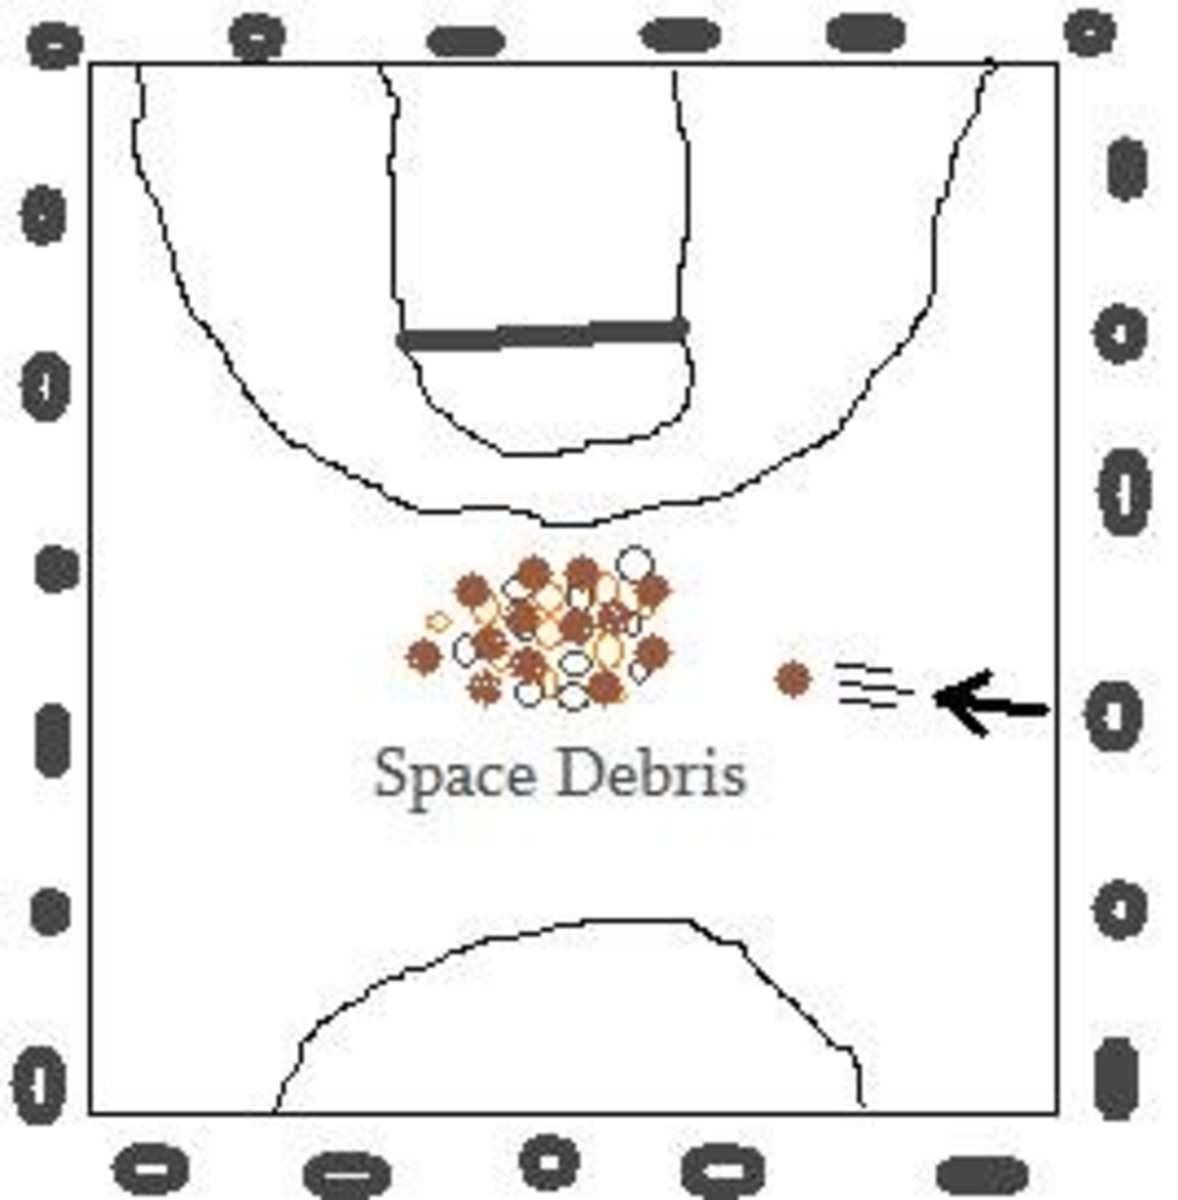 Space Clean-Up Diagram: One kids throws a ball at the group of balls and objects just like a pool cue ball breaks the group of balls at the beginning of the game.